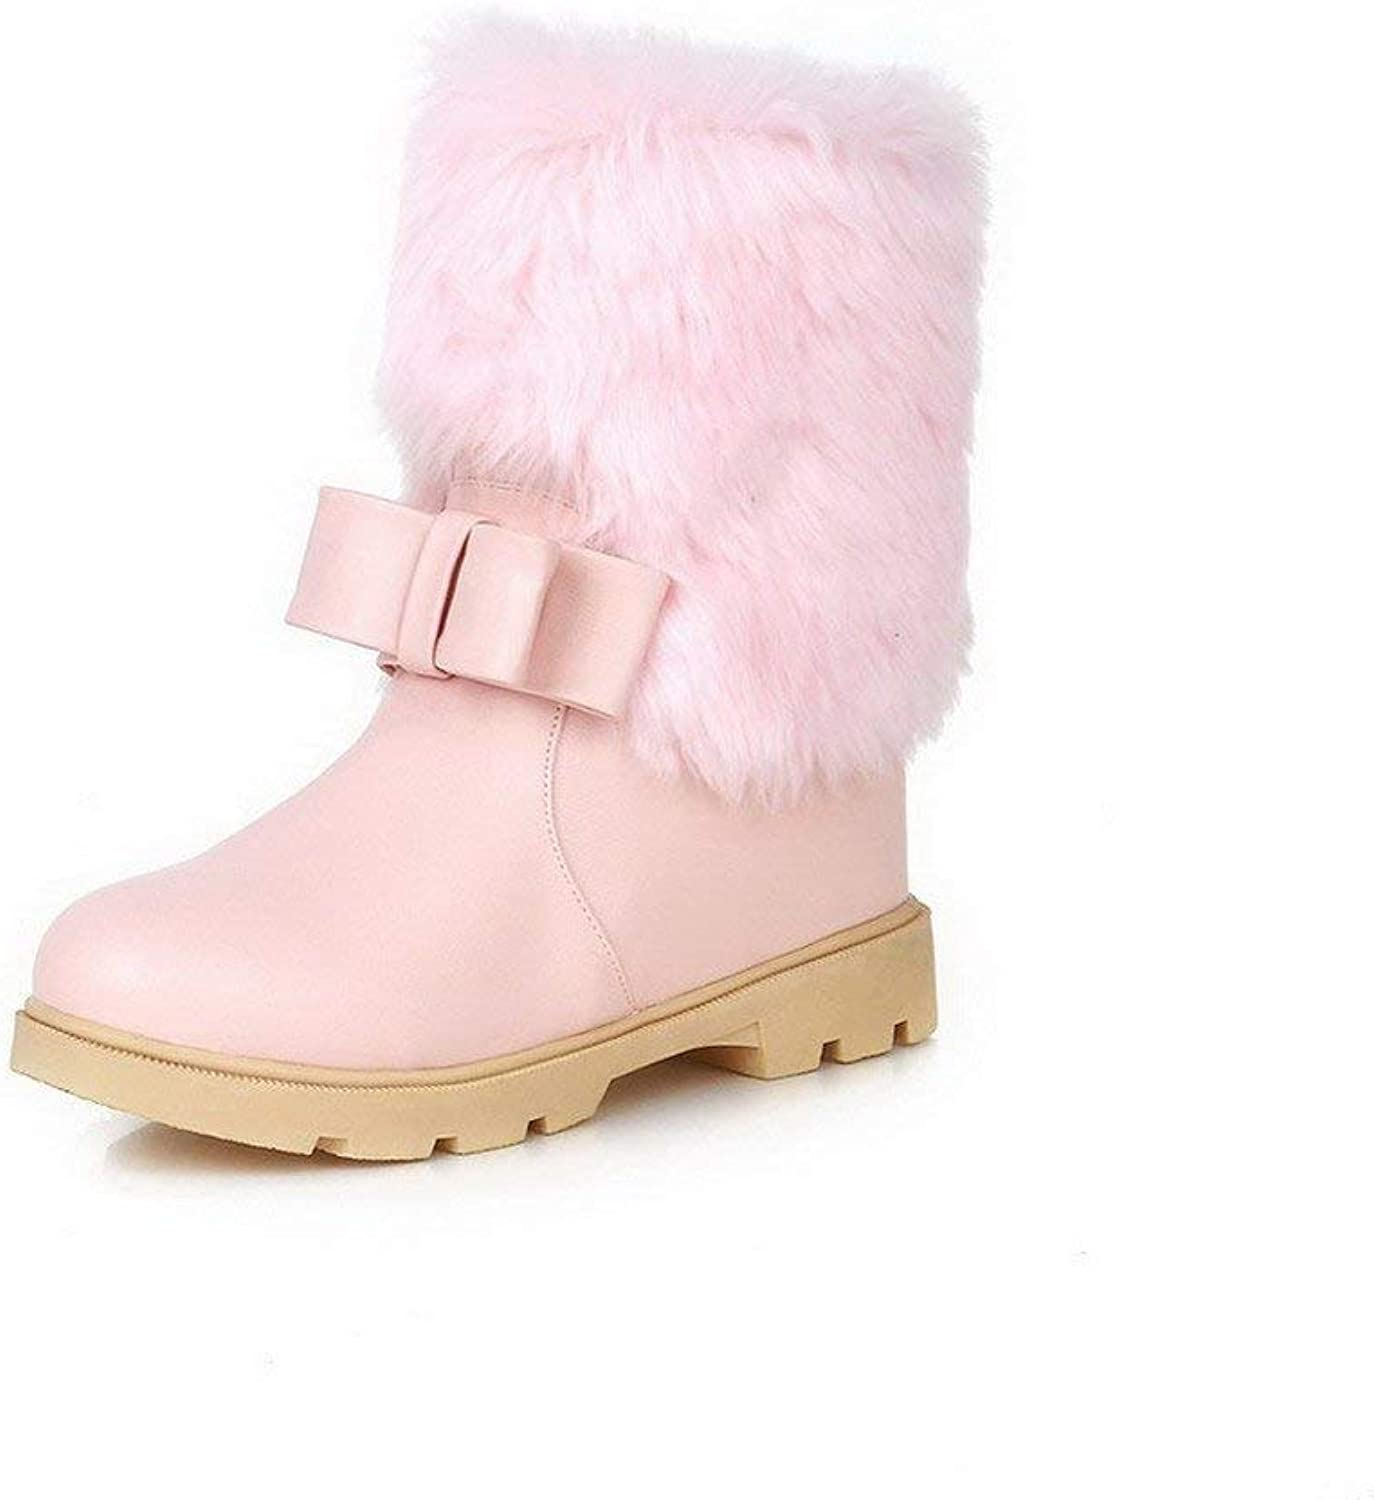 Women's Soft Material Pull-on Round Closed Toe Kitten-Heels Low-top Boots